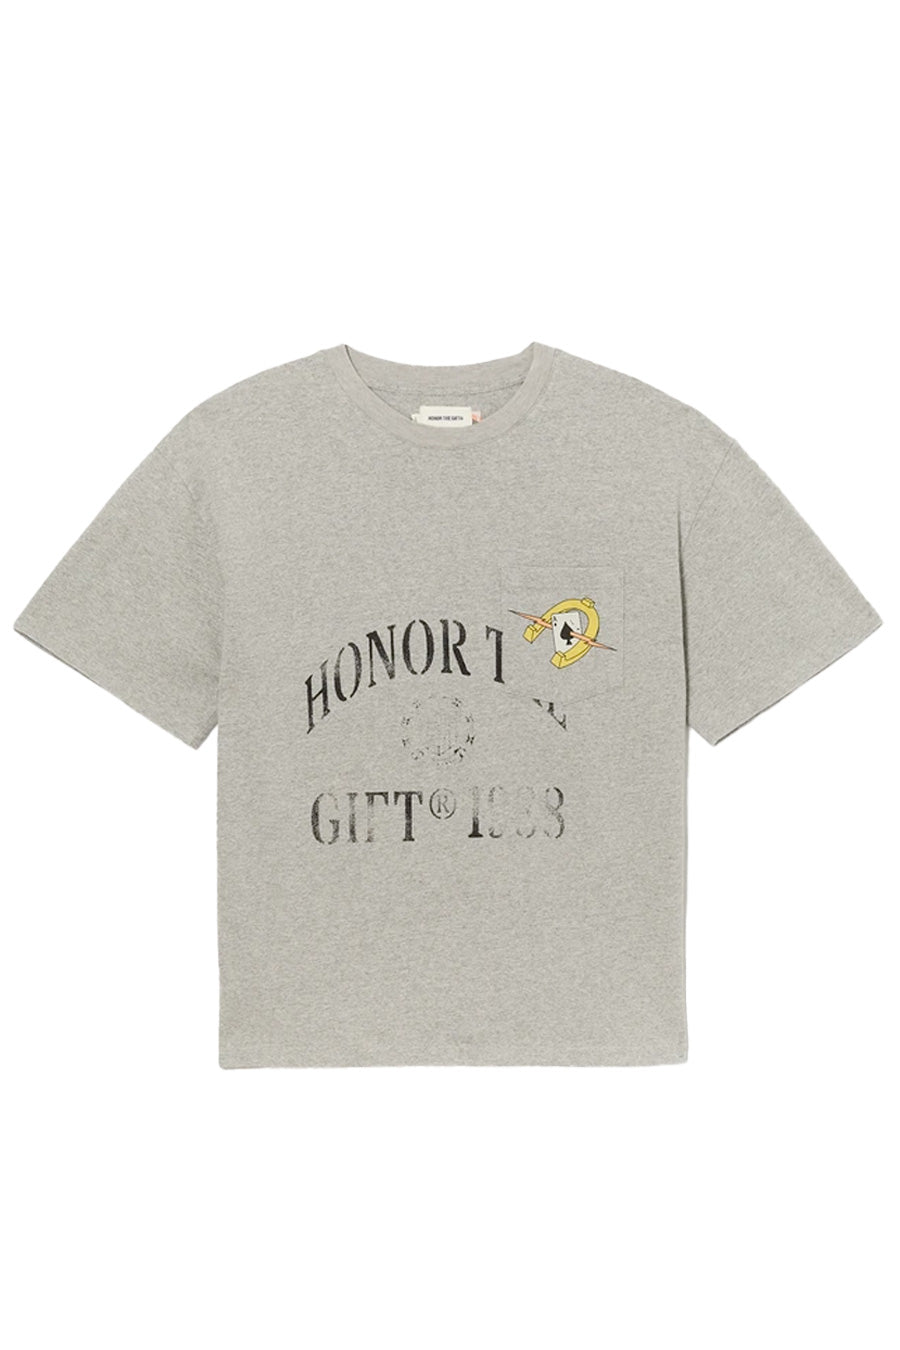 Honor the Gift - Grey Pocket Aces T-Shirt | 1032 SPACE